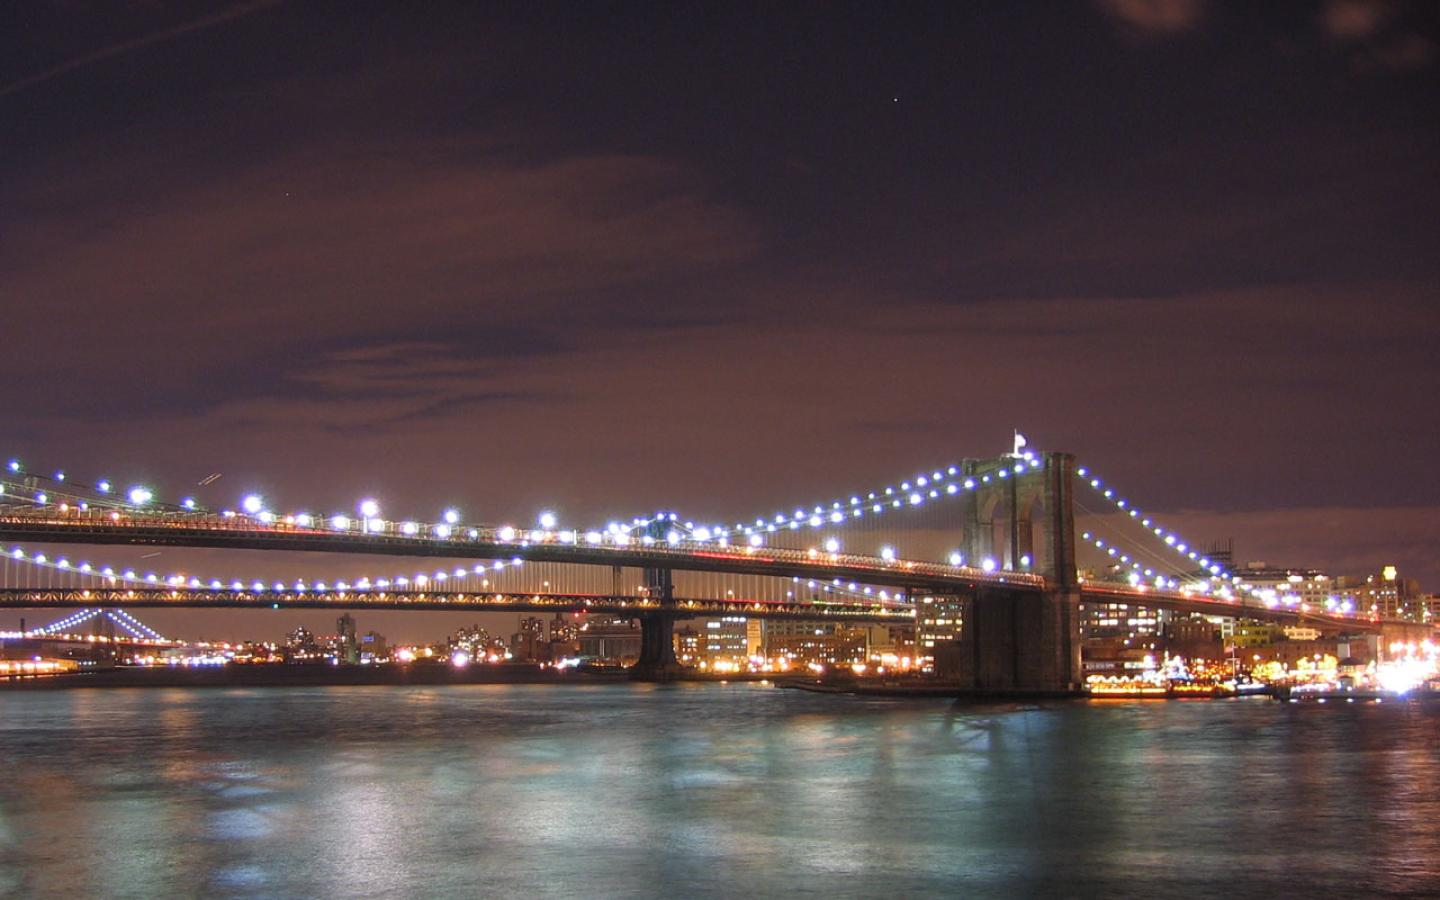 New York - Brooklyn Bridge Wallpaper #4 1440 x 900